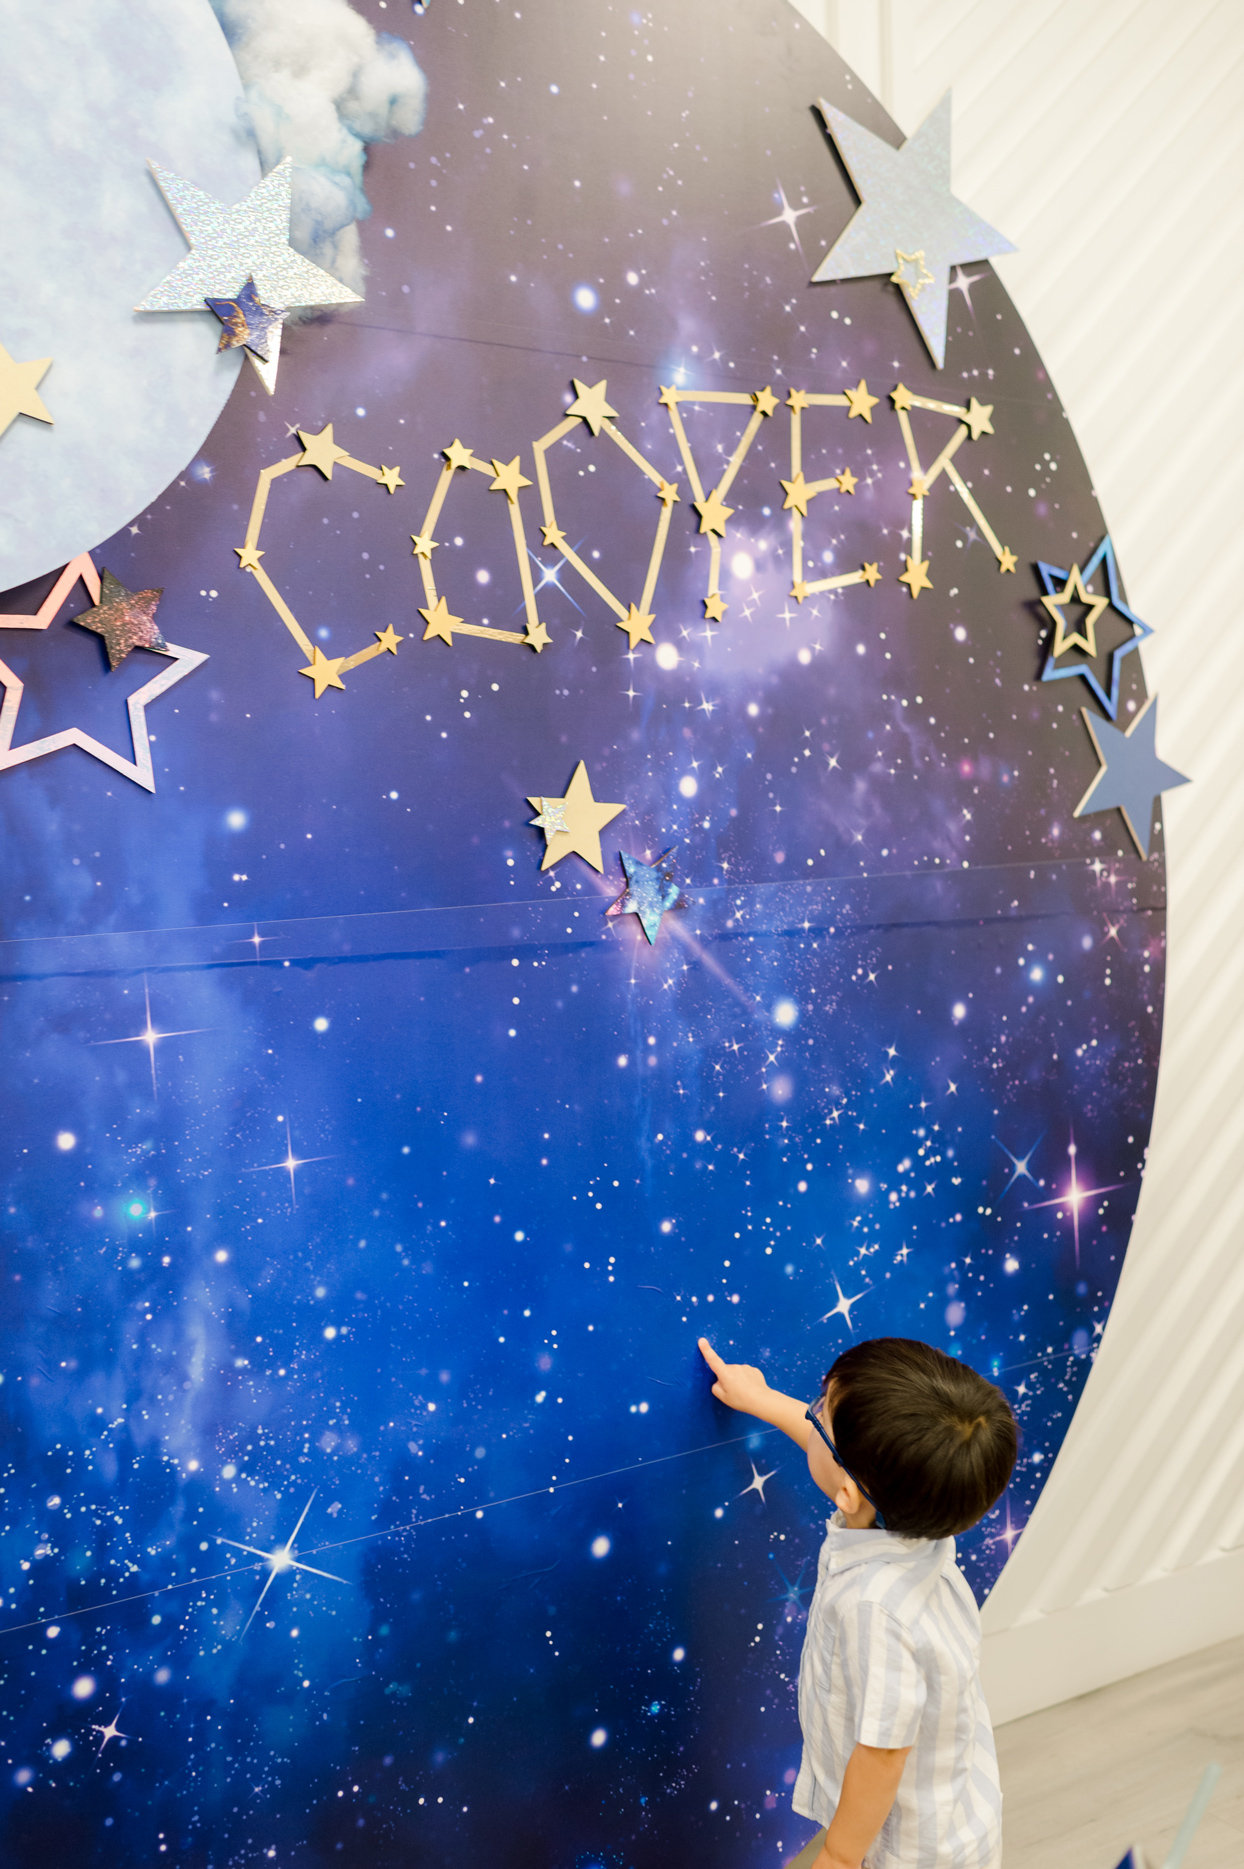 Cooper name spelled in star constellation decor